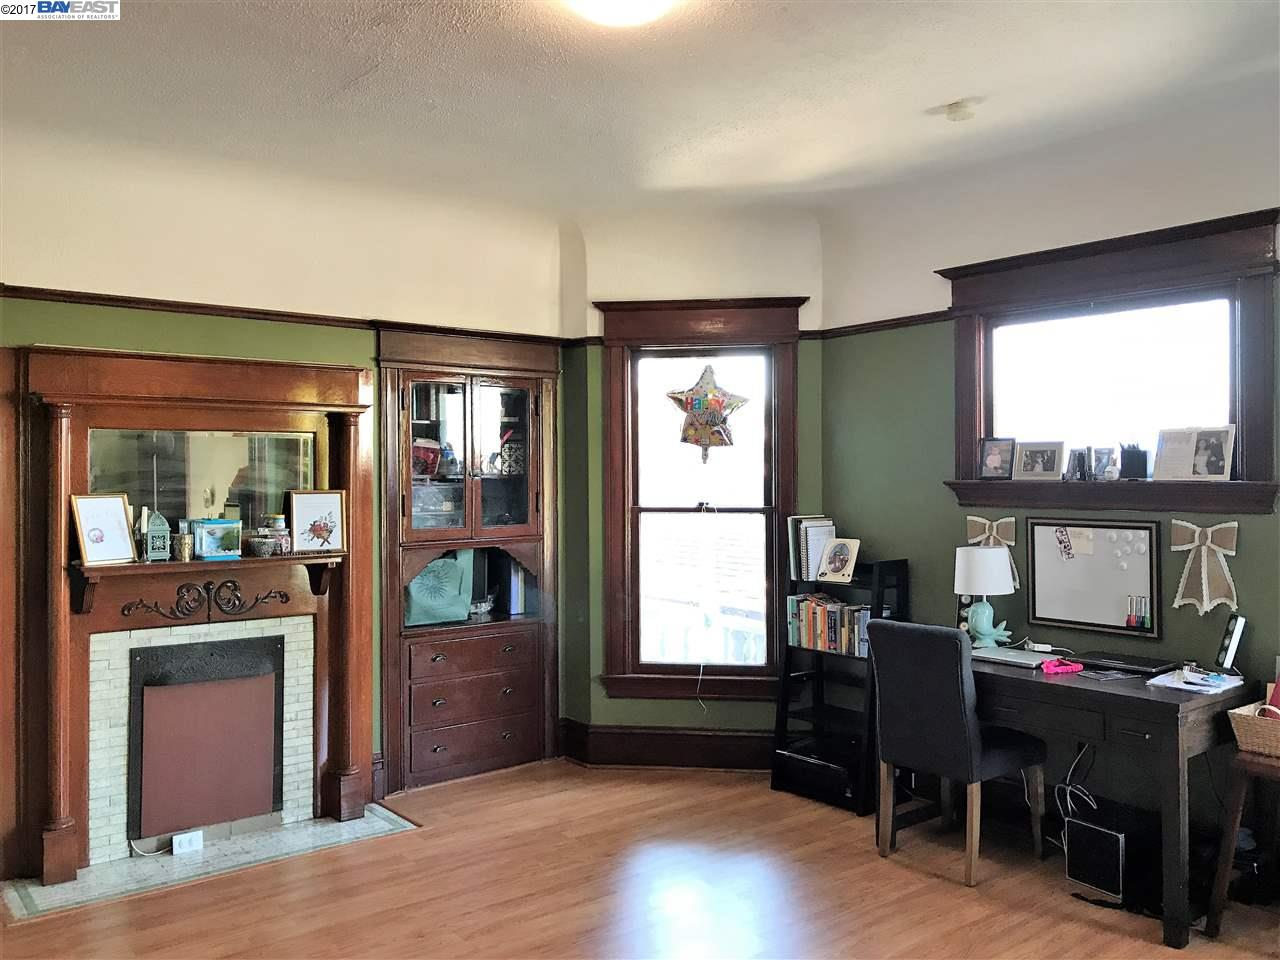 Additional photo for property listing at 875 Cedar Street 875 Cedar Street Alameda, California 94501 United States